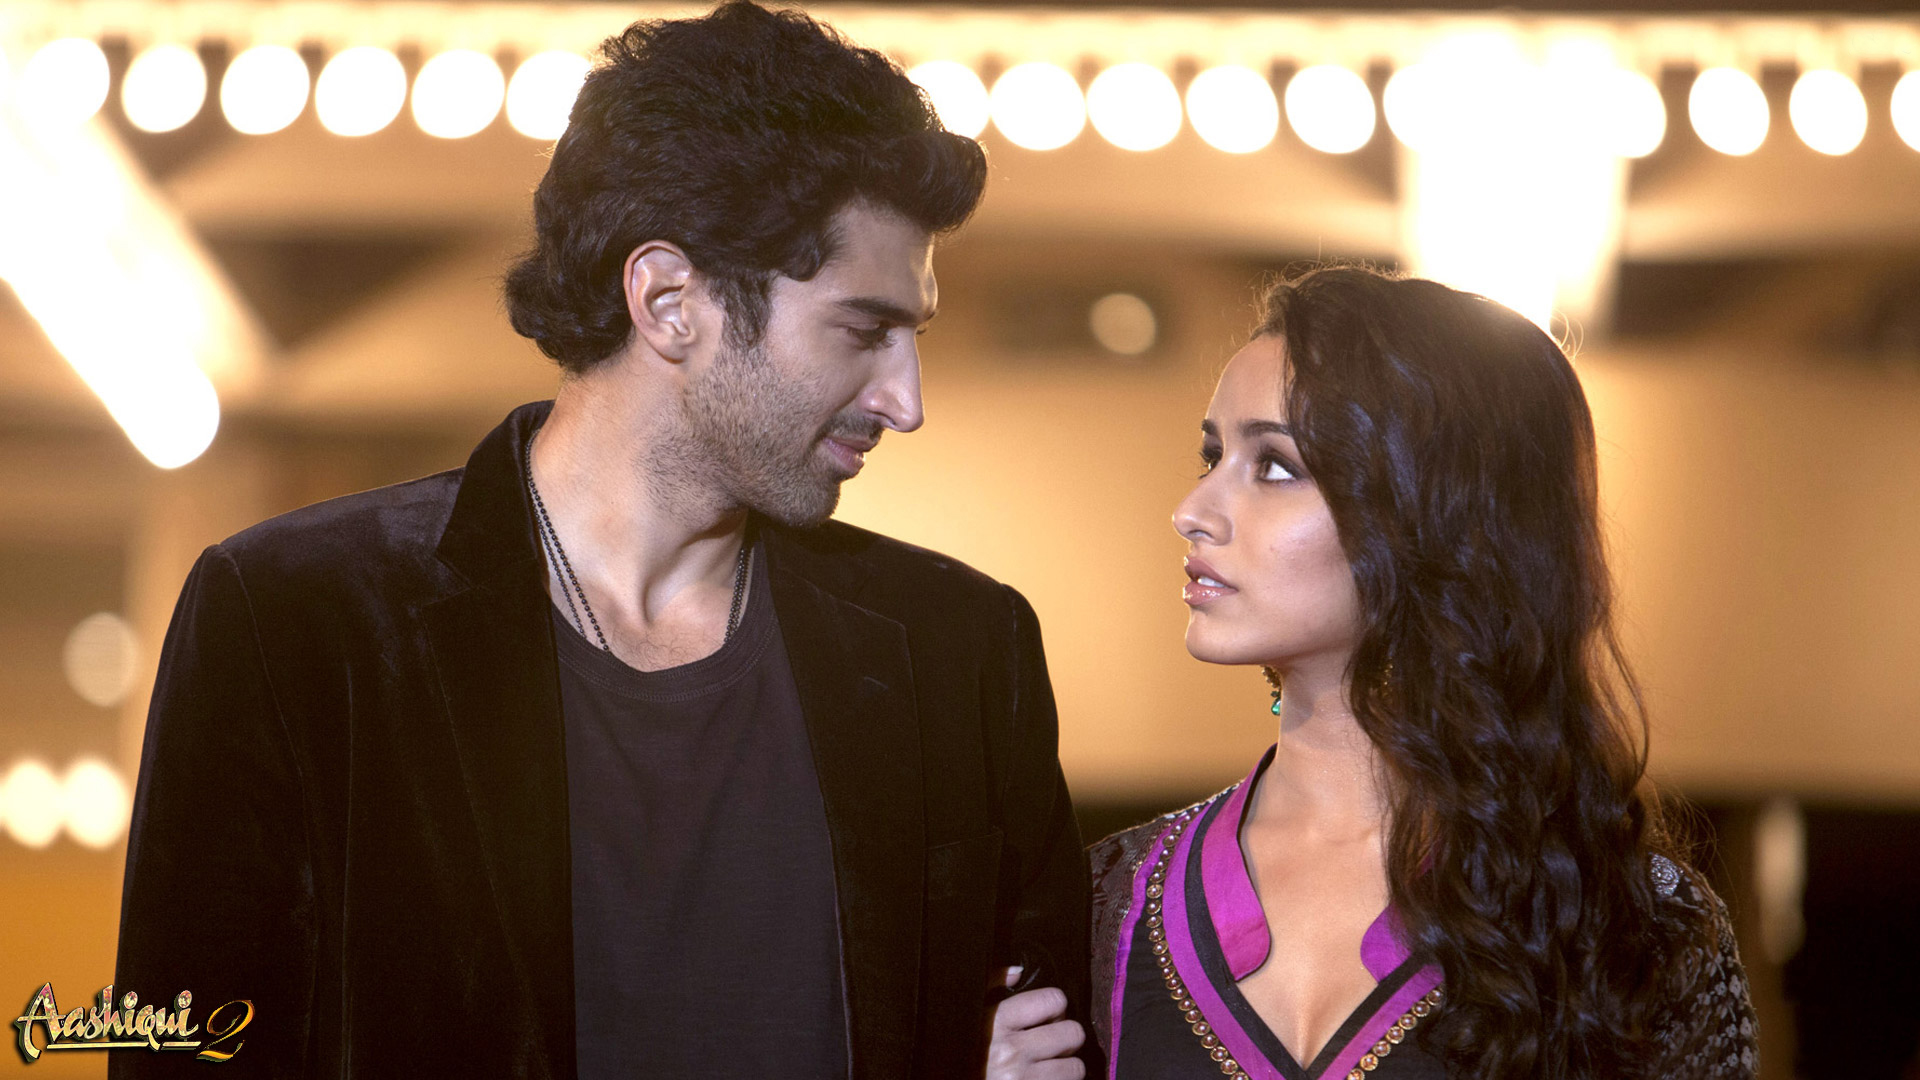 aashiqui 2 songs download mp4 audio pagalworld